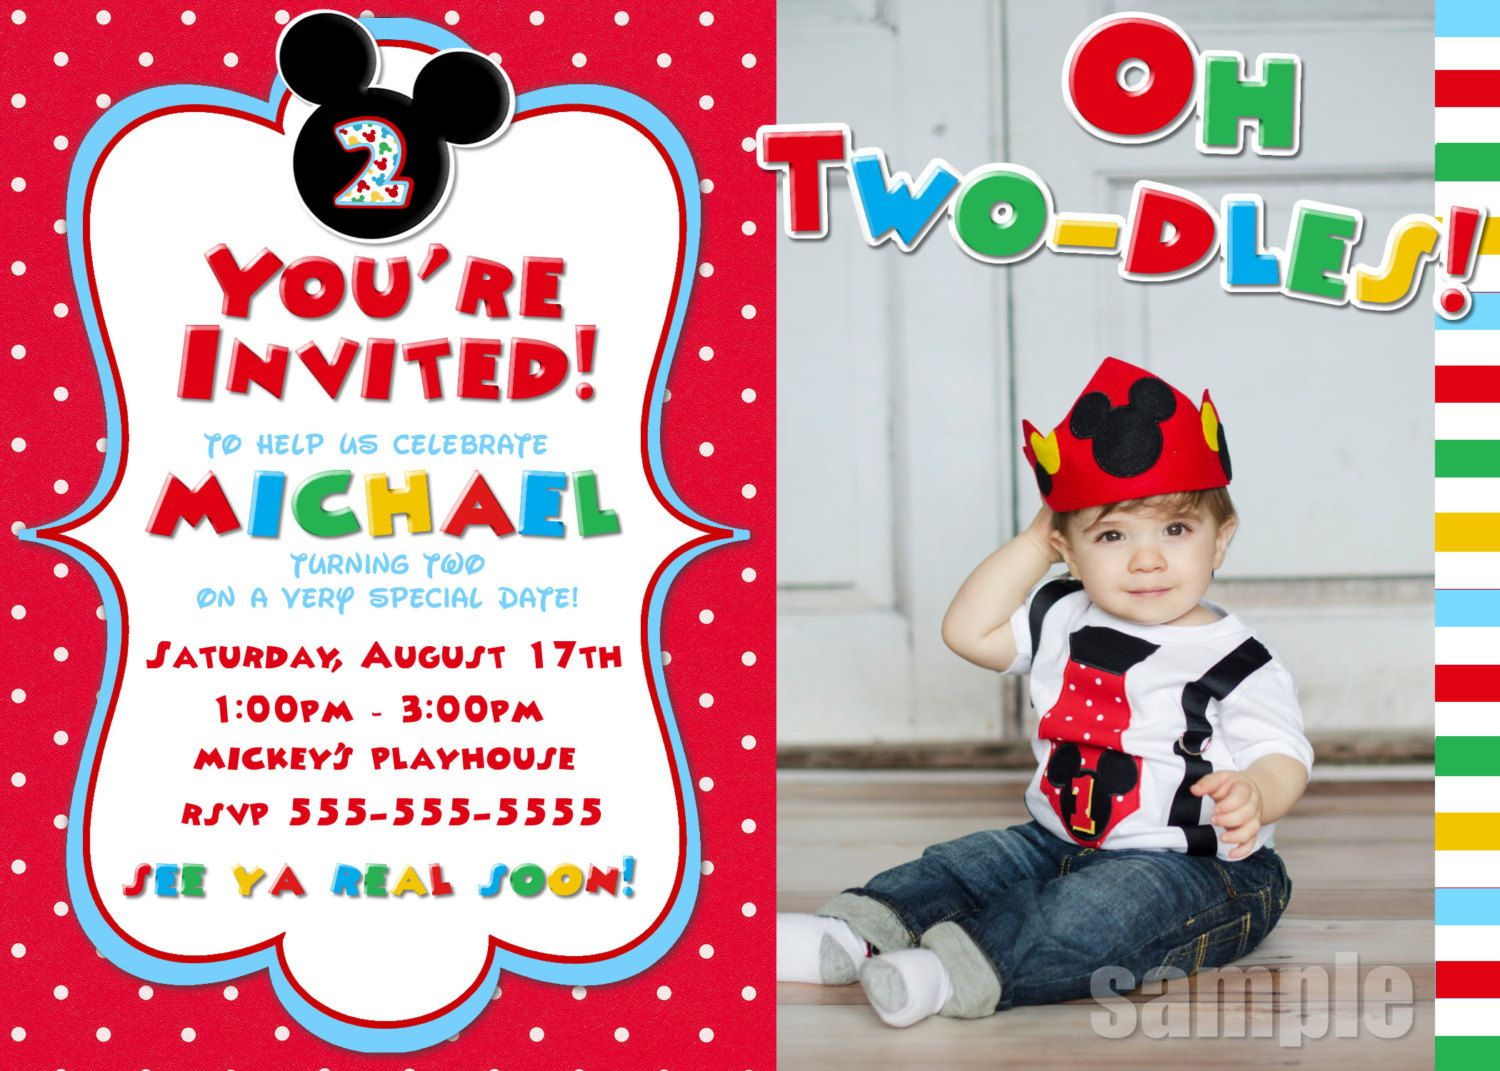 Mickey Mouse Clubhouse Birthday Party Invitation Free Template